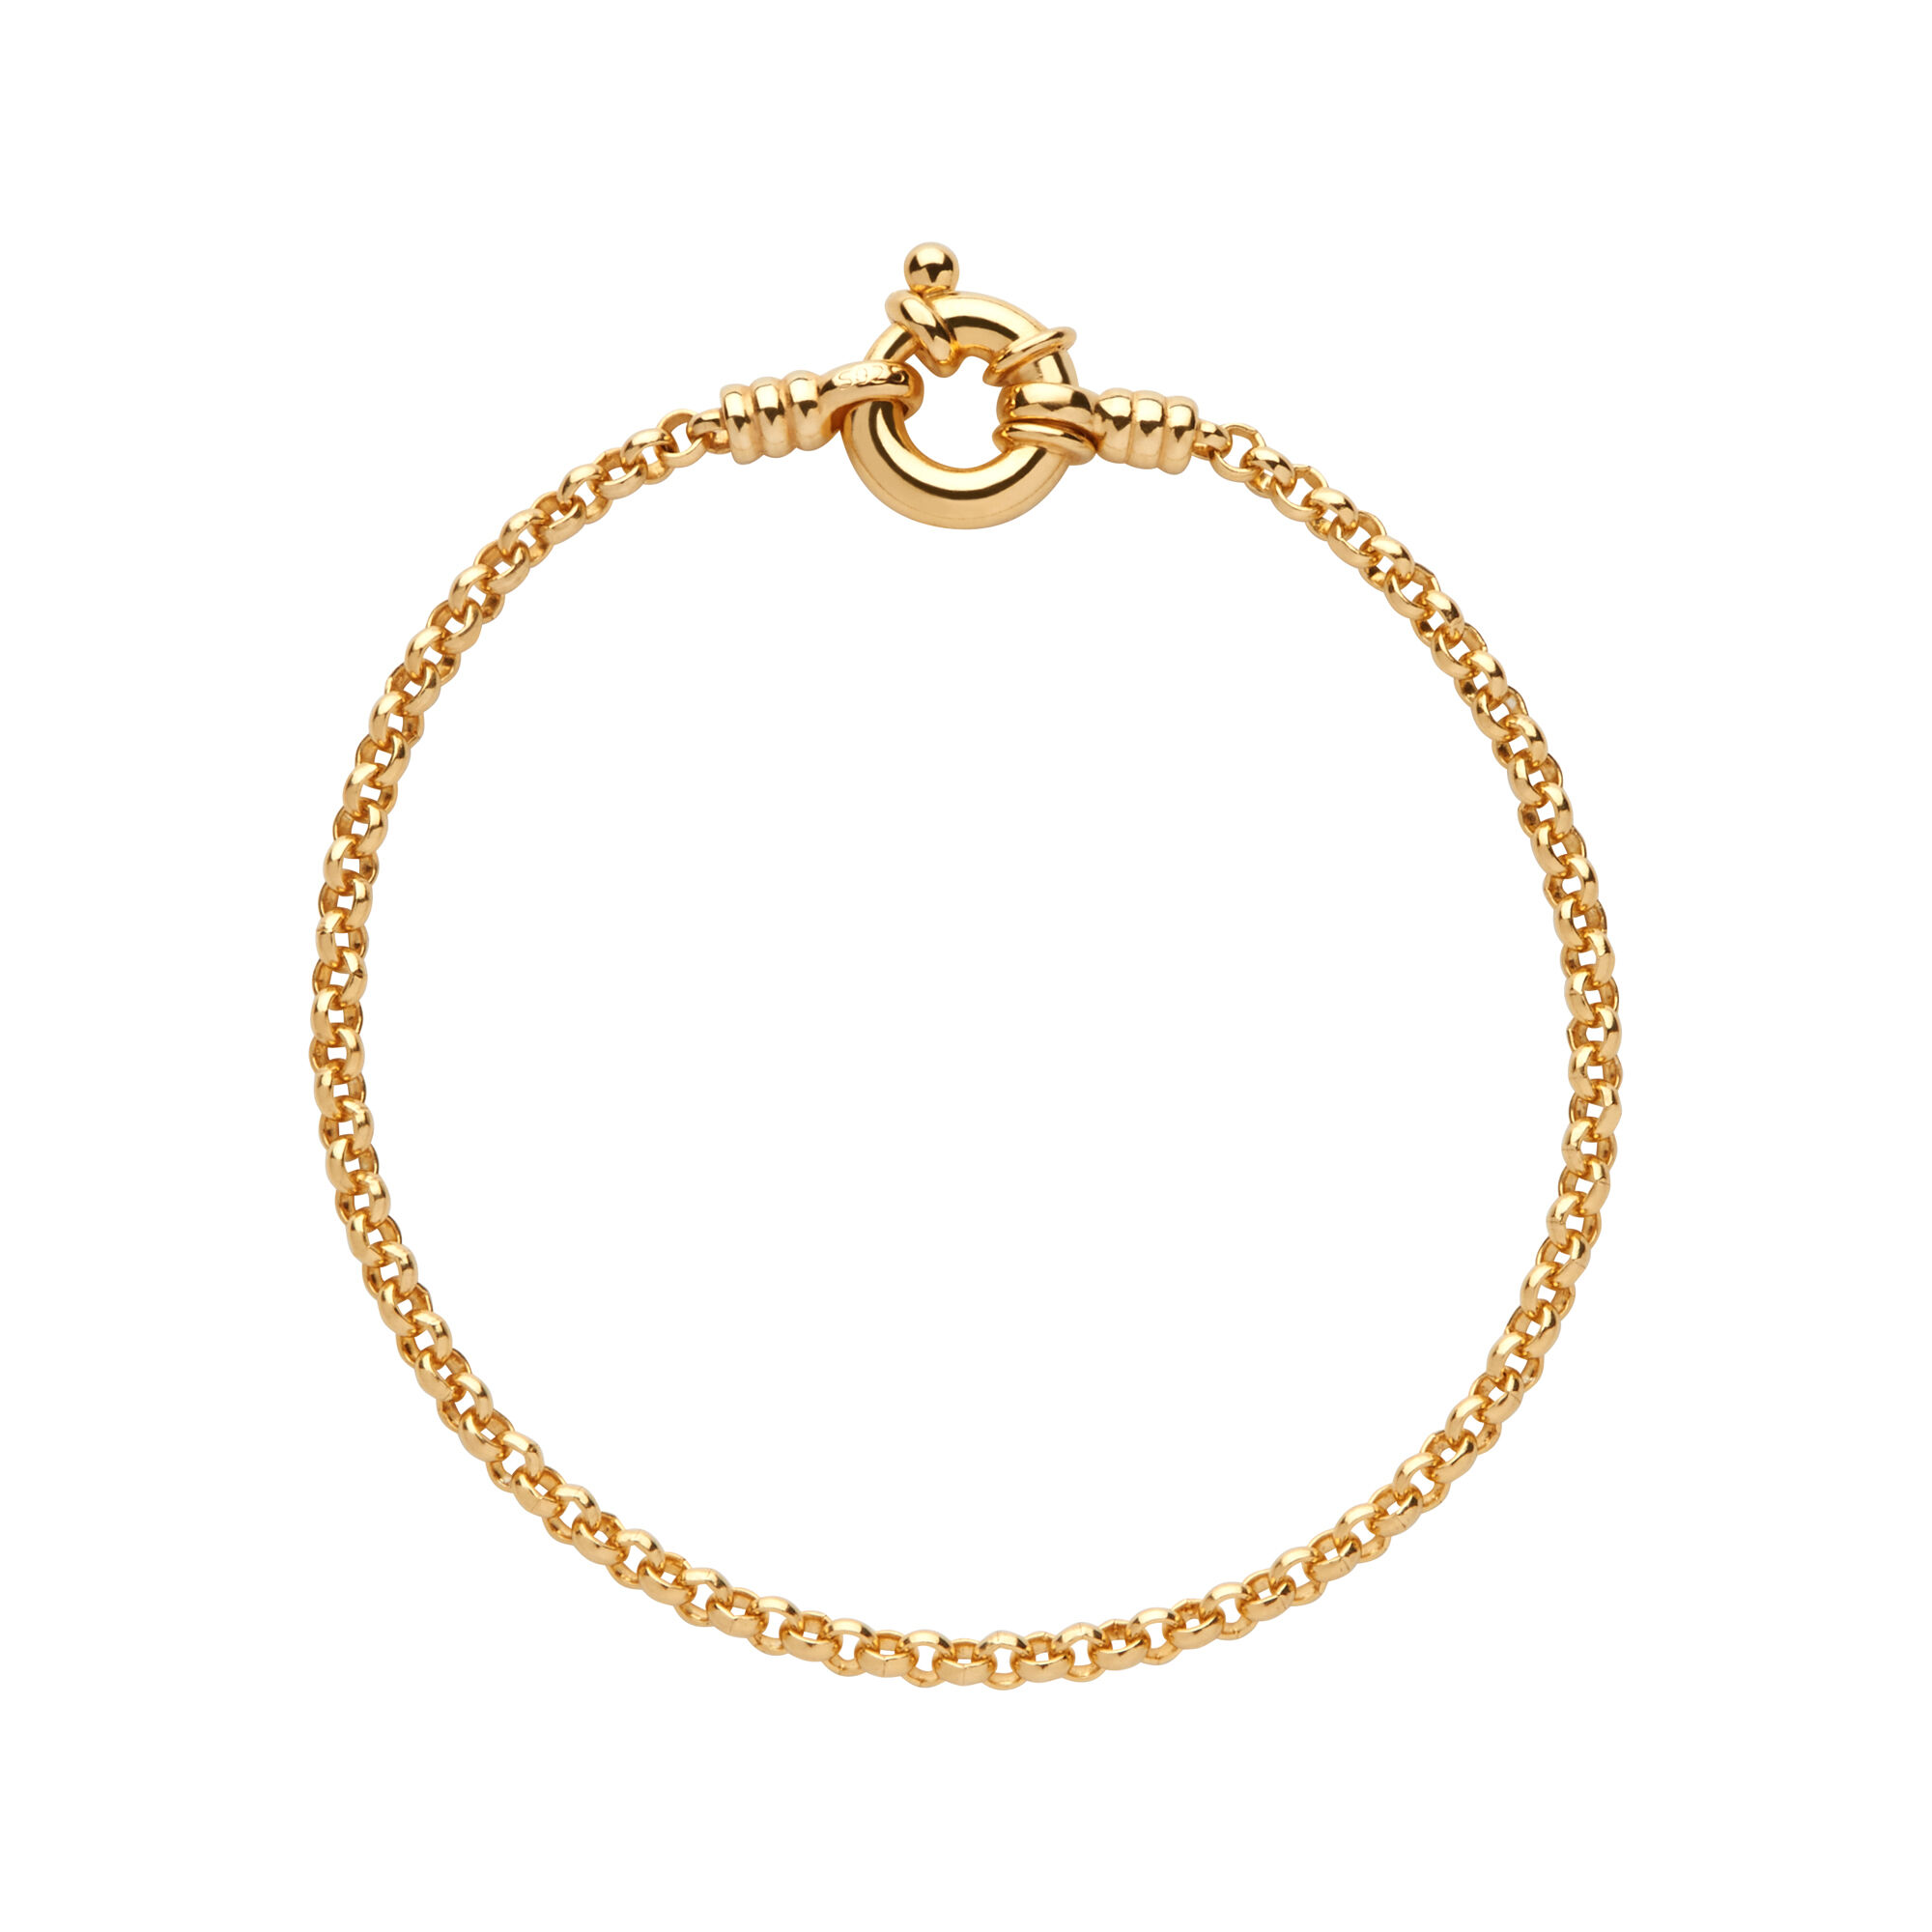 of capture charm gold bracelet yellow anklet vermeil gb en links london hires